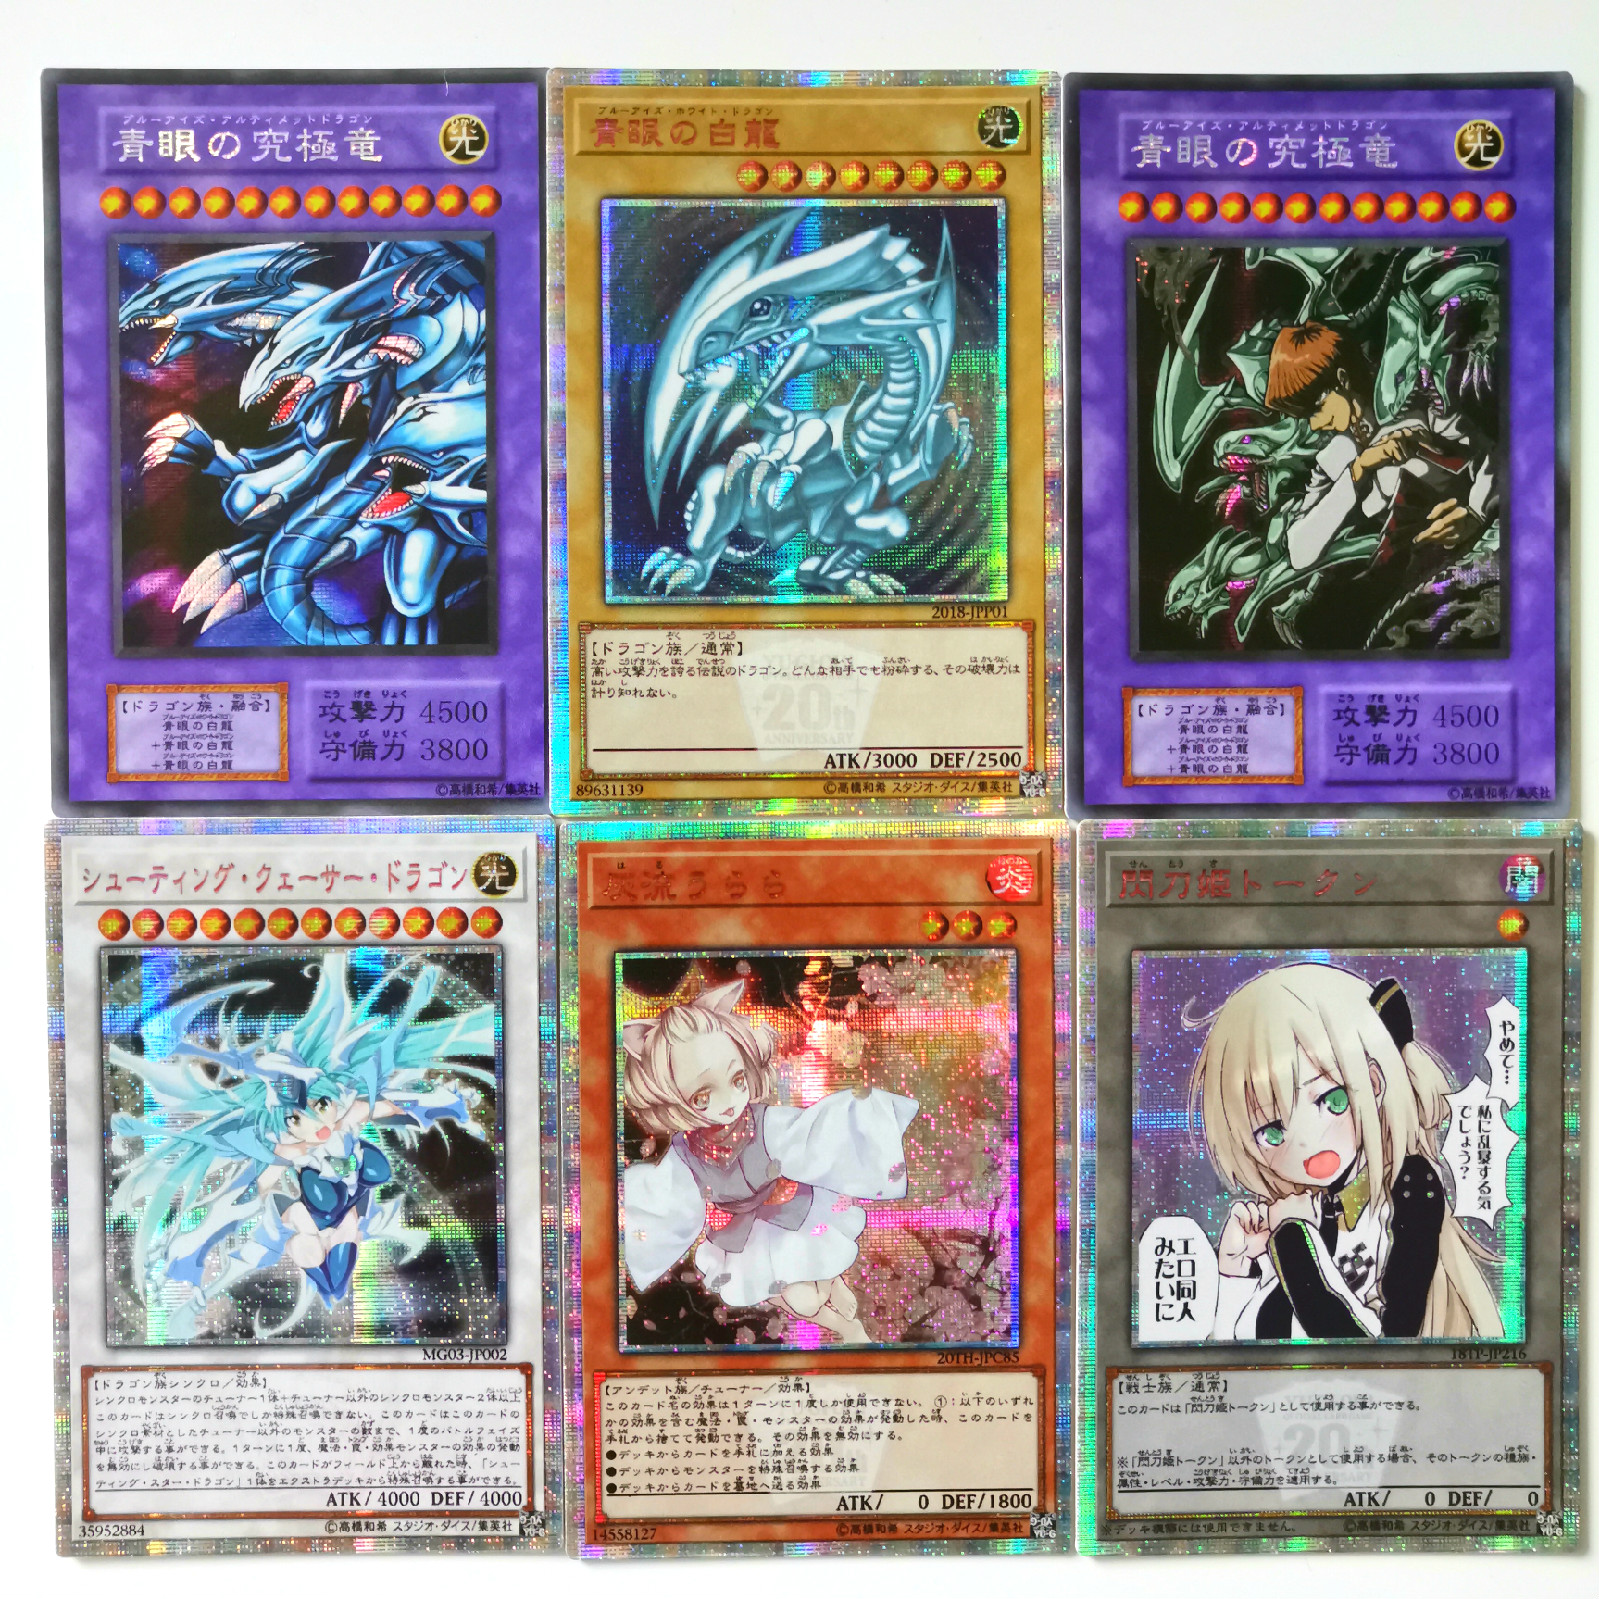 27 Styles Yu Gi Oh jouets loisirs passe-temps objets de Collection jeu Collection Anime cartes